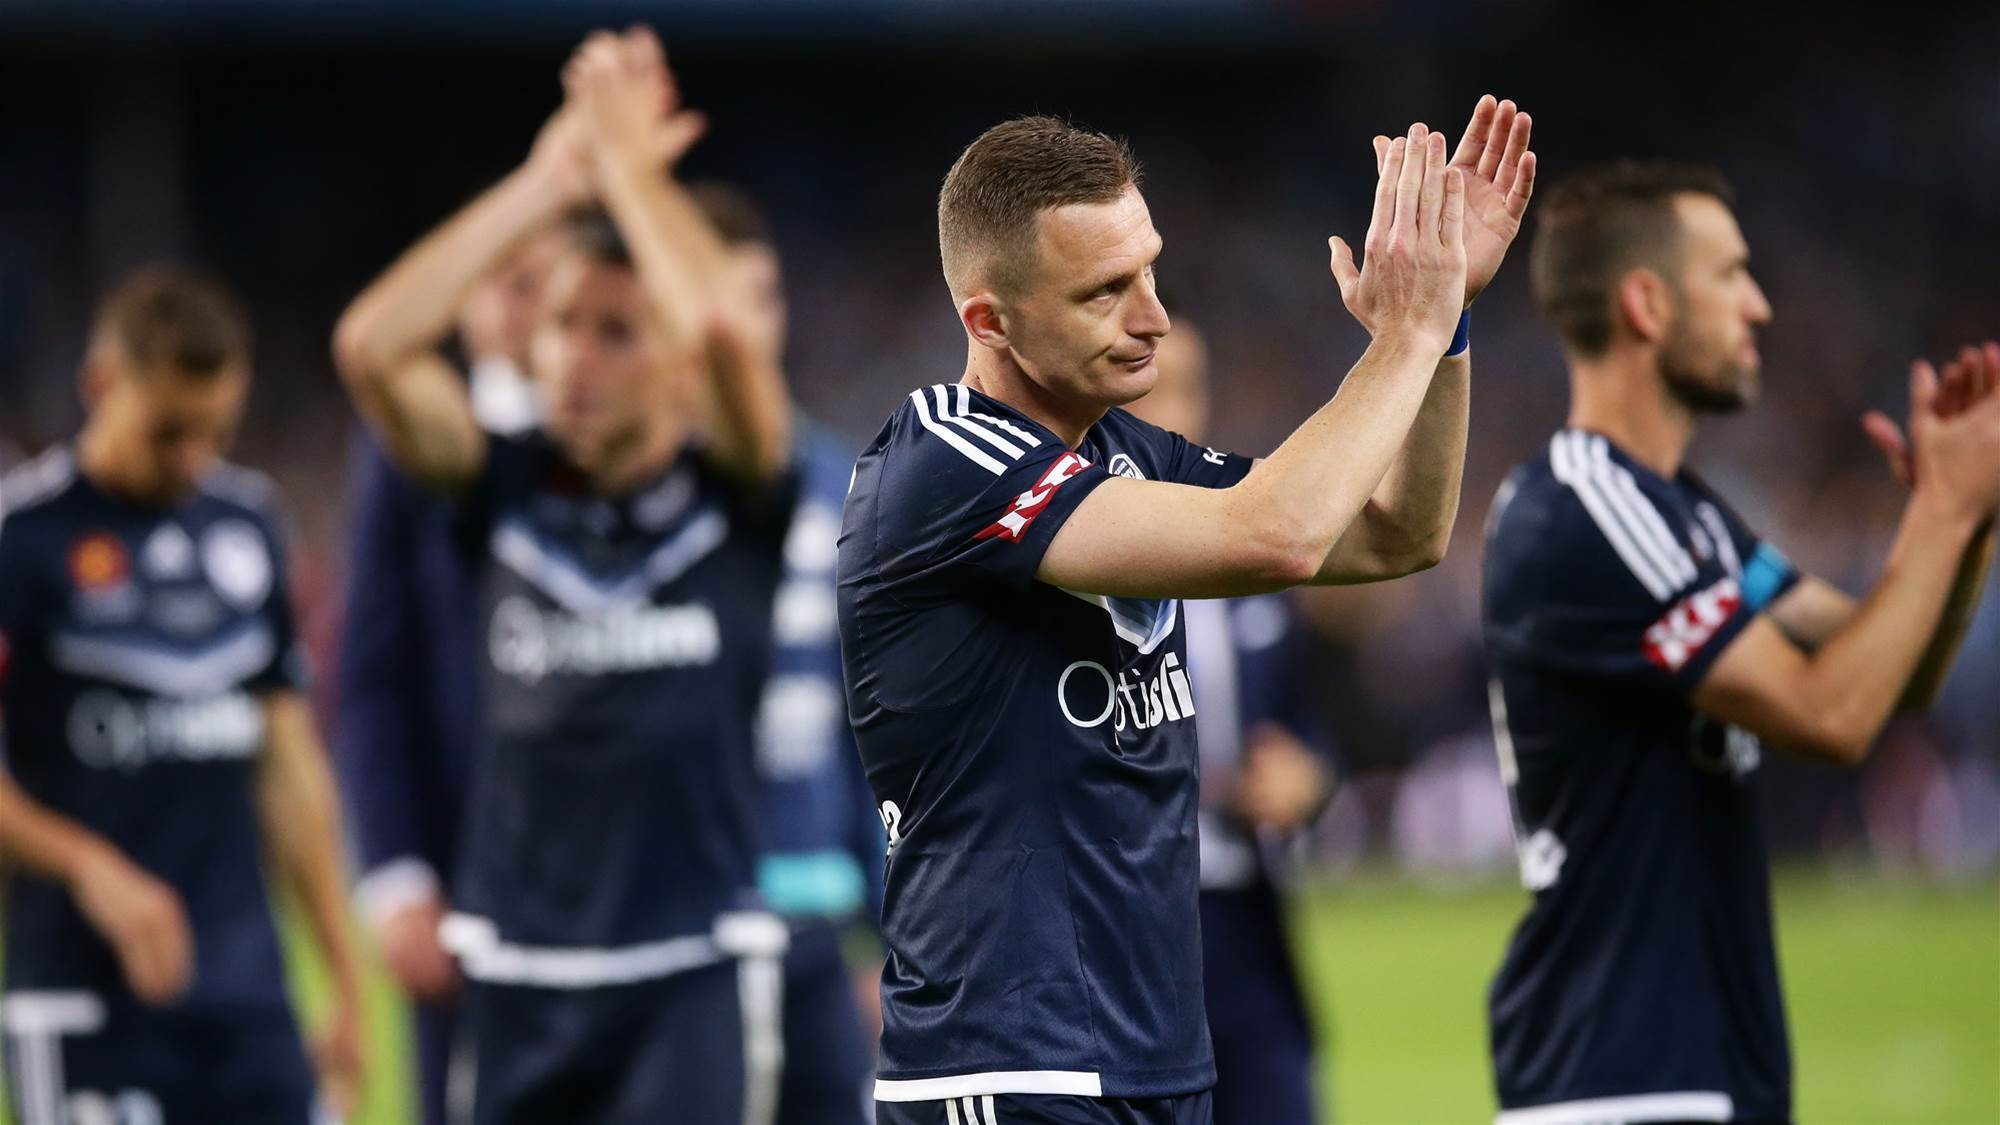 Bes: Sydney were luckier with pens